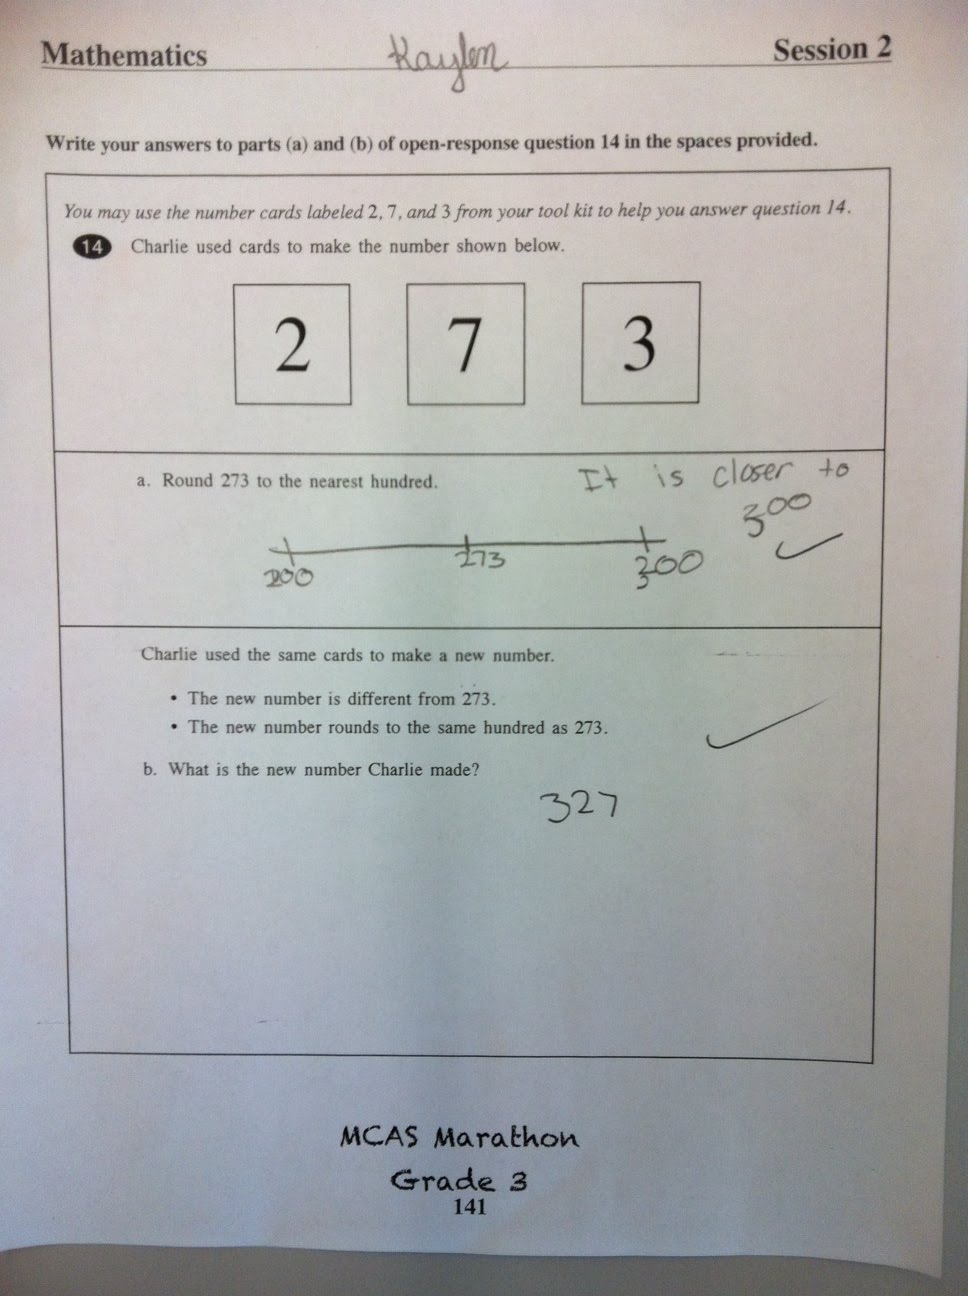 Michael J. Perkins School Blog: MCAS Math Marathon and the Answers ...